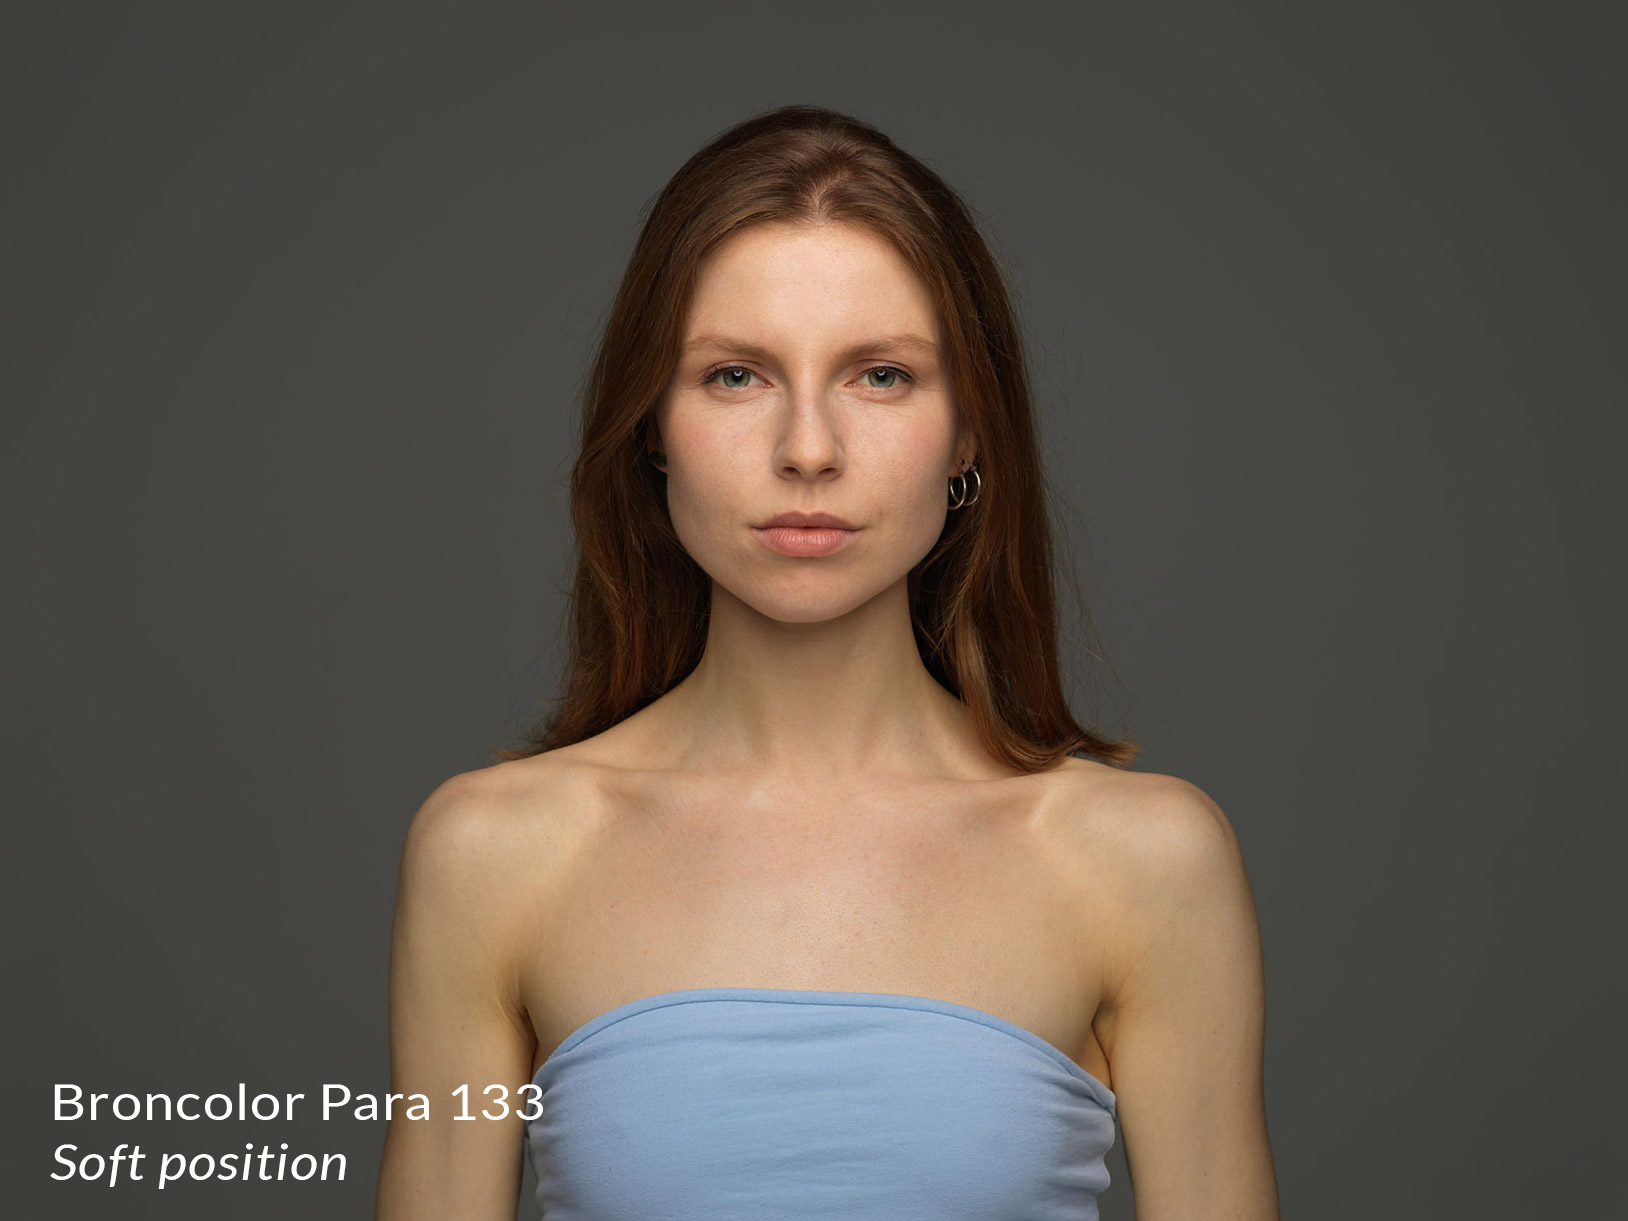 Lighting from broncolor para 133 in the soft position